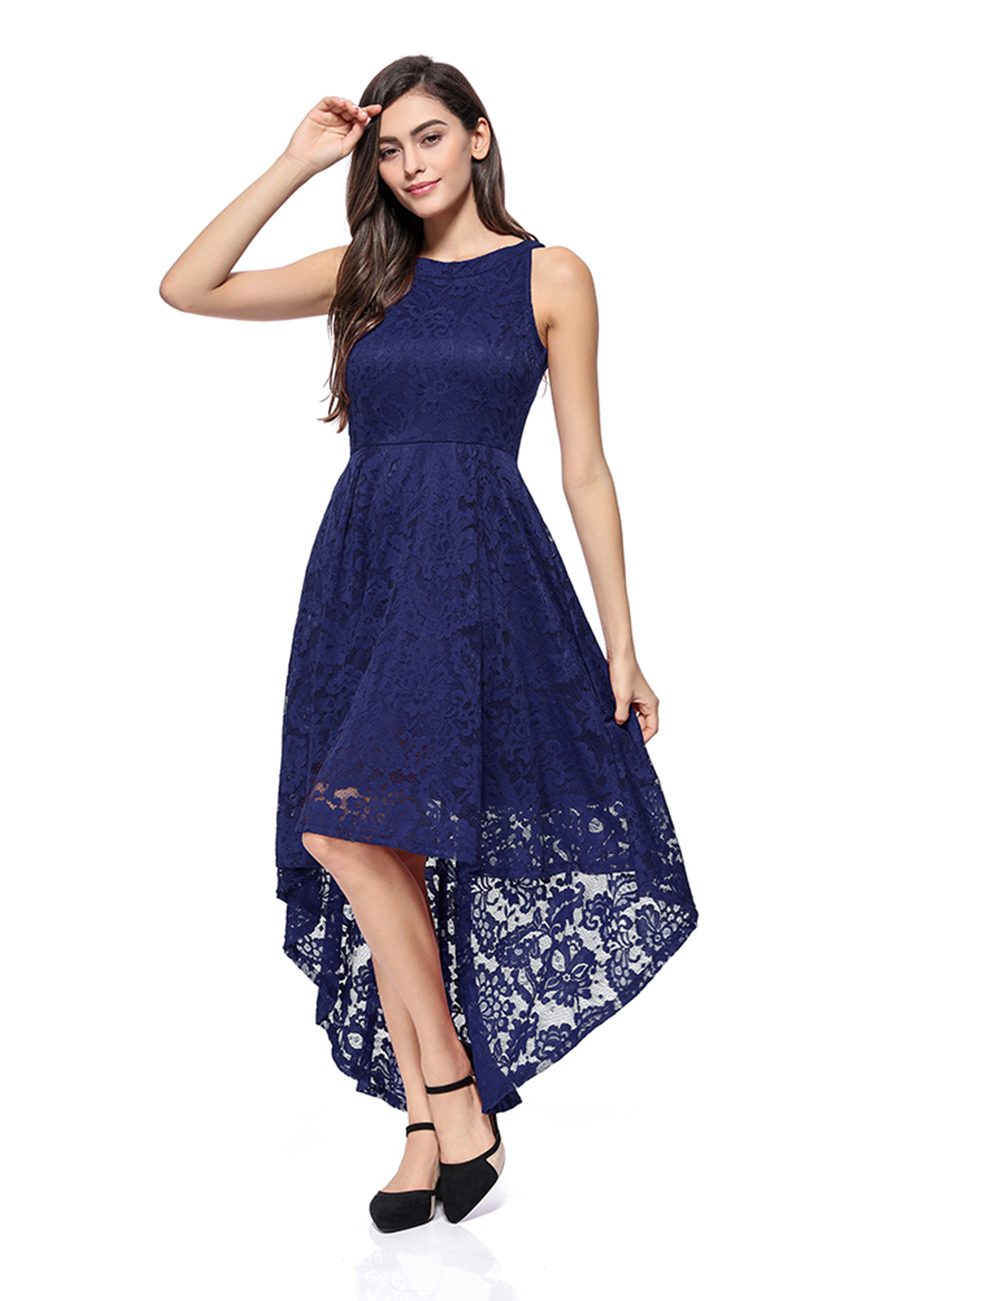 //cdn.affectcloud.com/feelingirldress/upload/imgs/2019-06-11/VZ190800-BU6/VZ190800-BU6-5.jpg